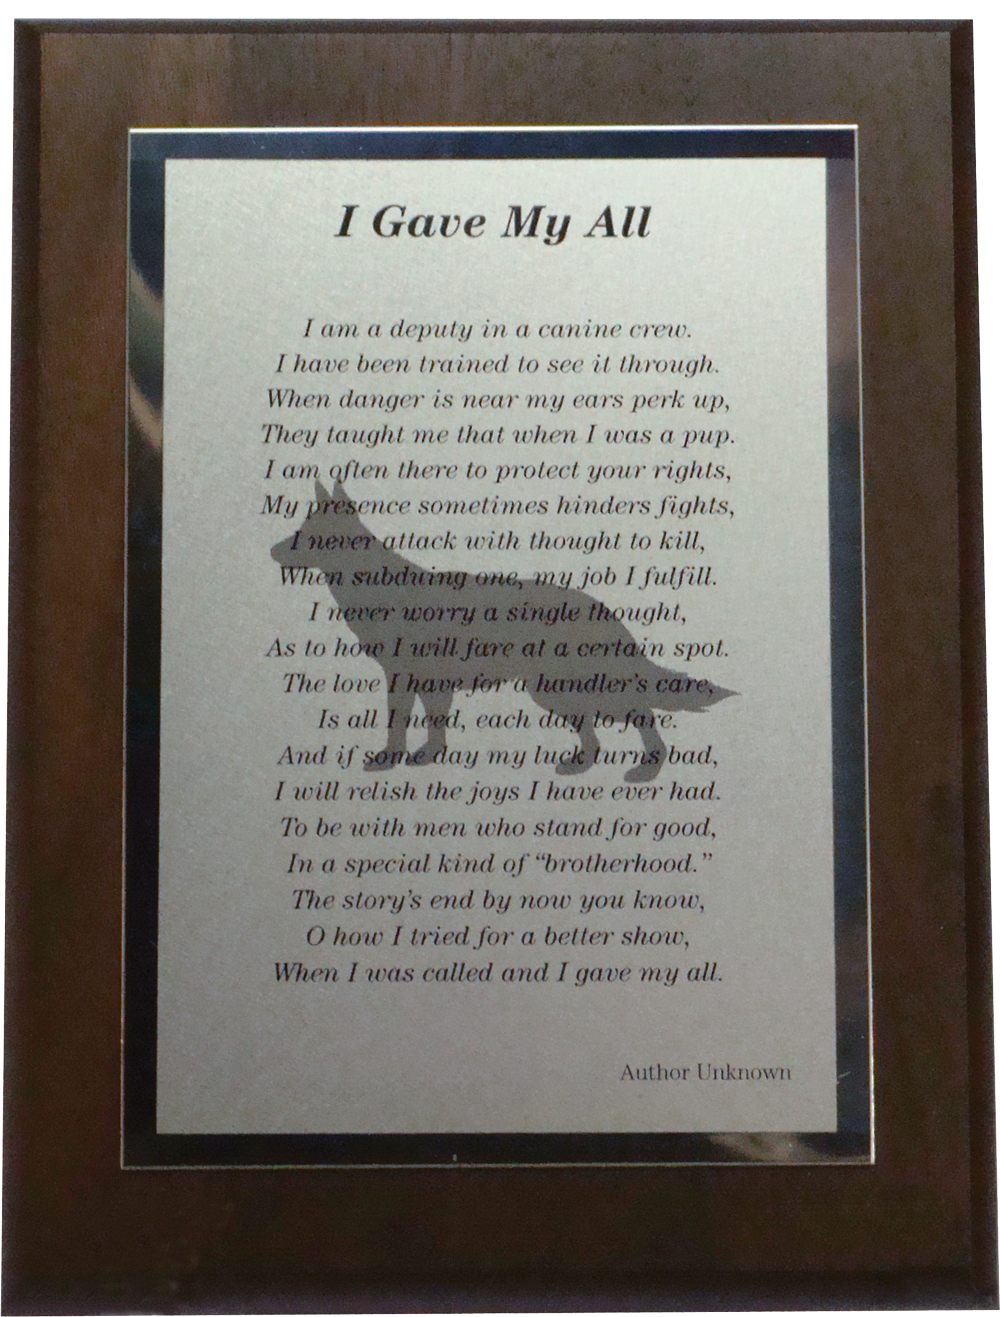 Sample Of Poem With Background Image